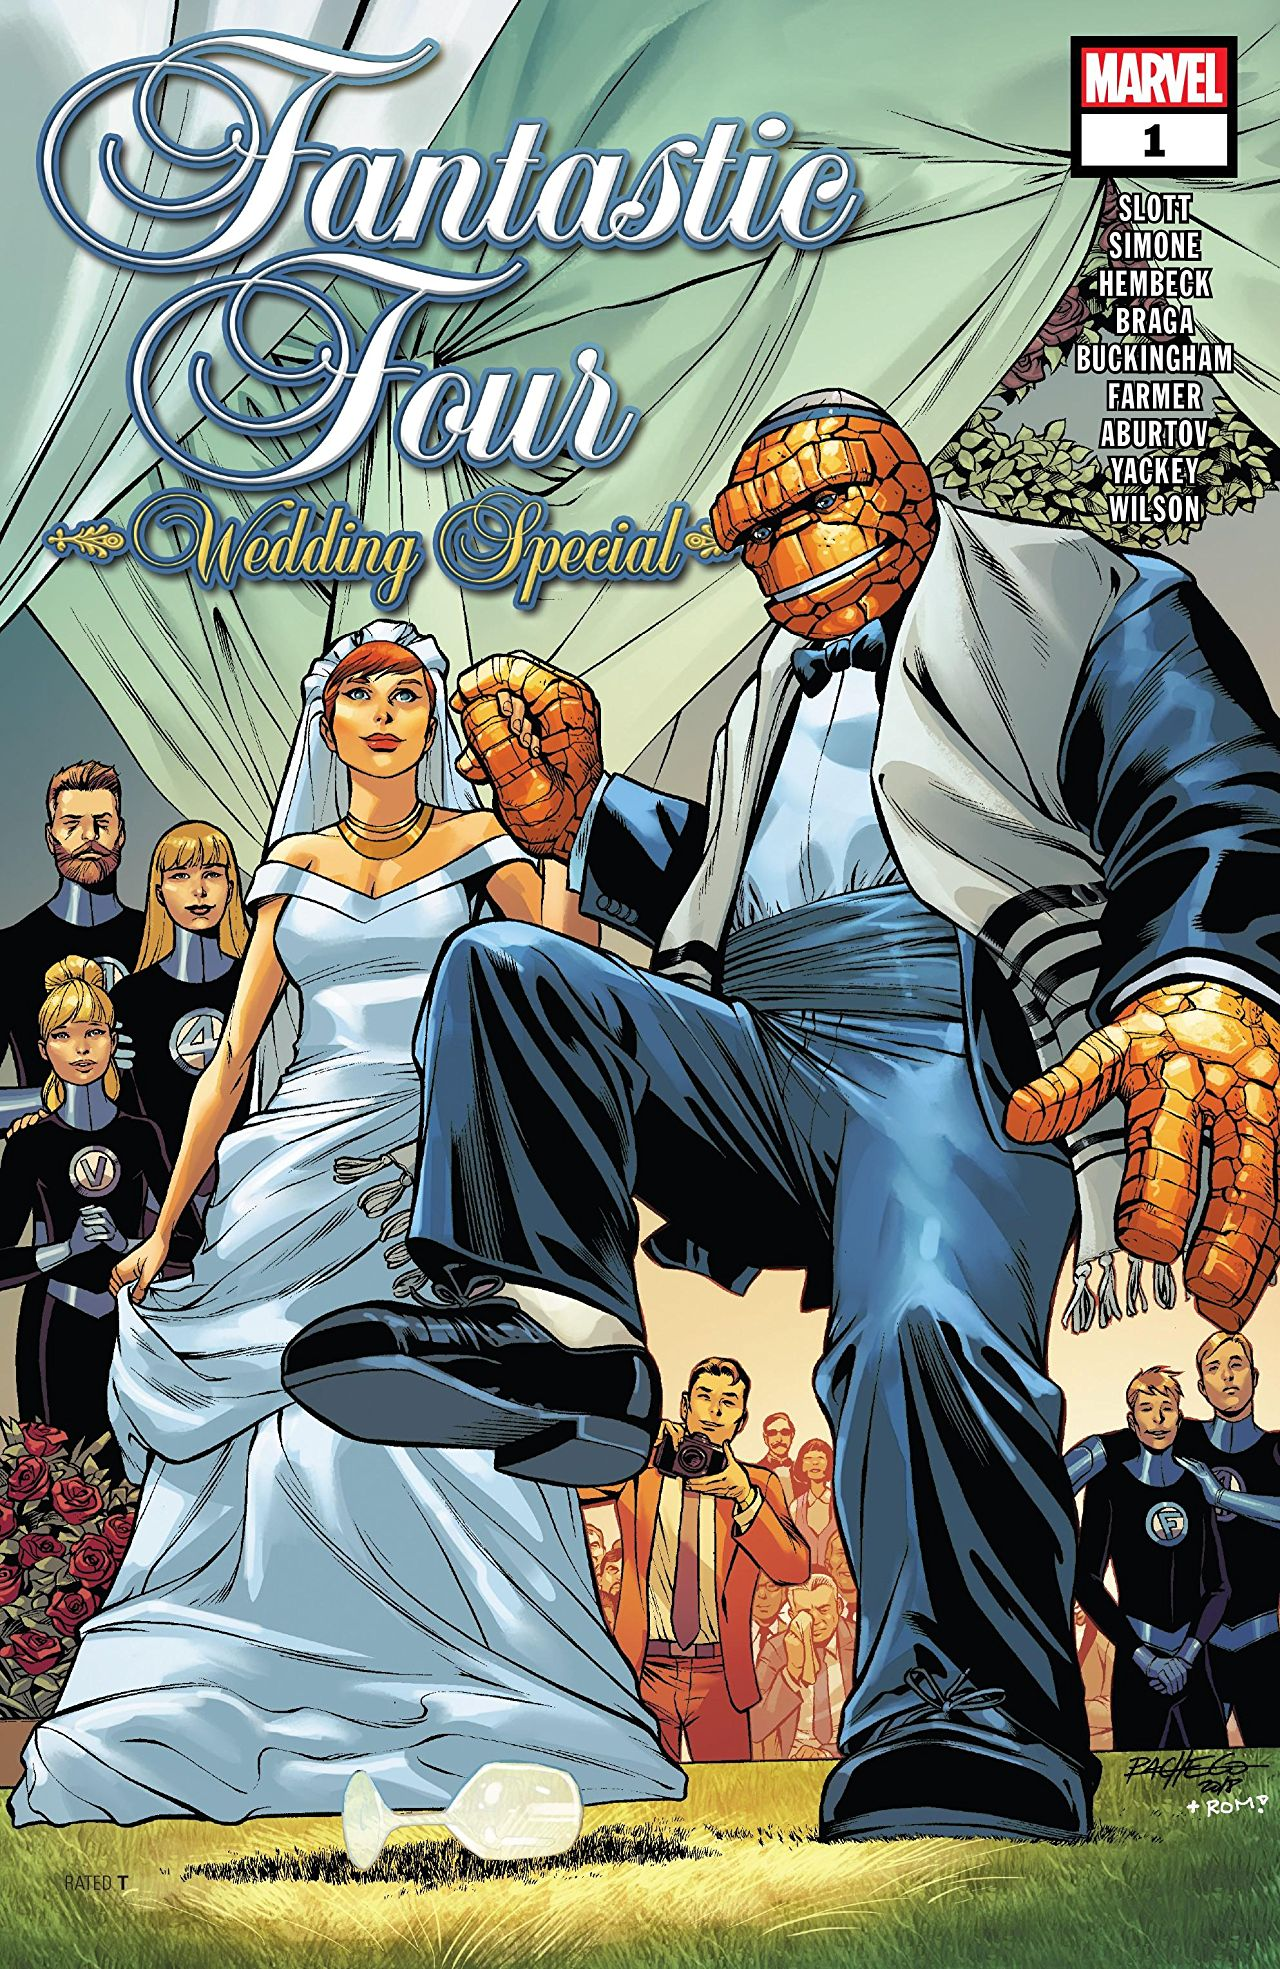 Fantastic Four: Wedding Special Vol 1 1